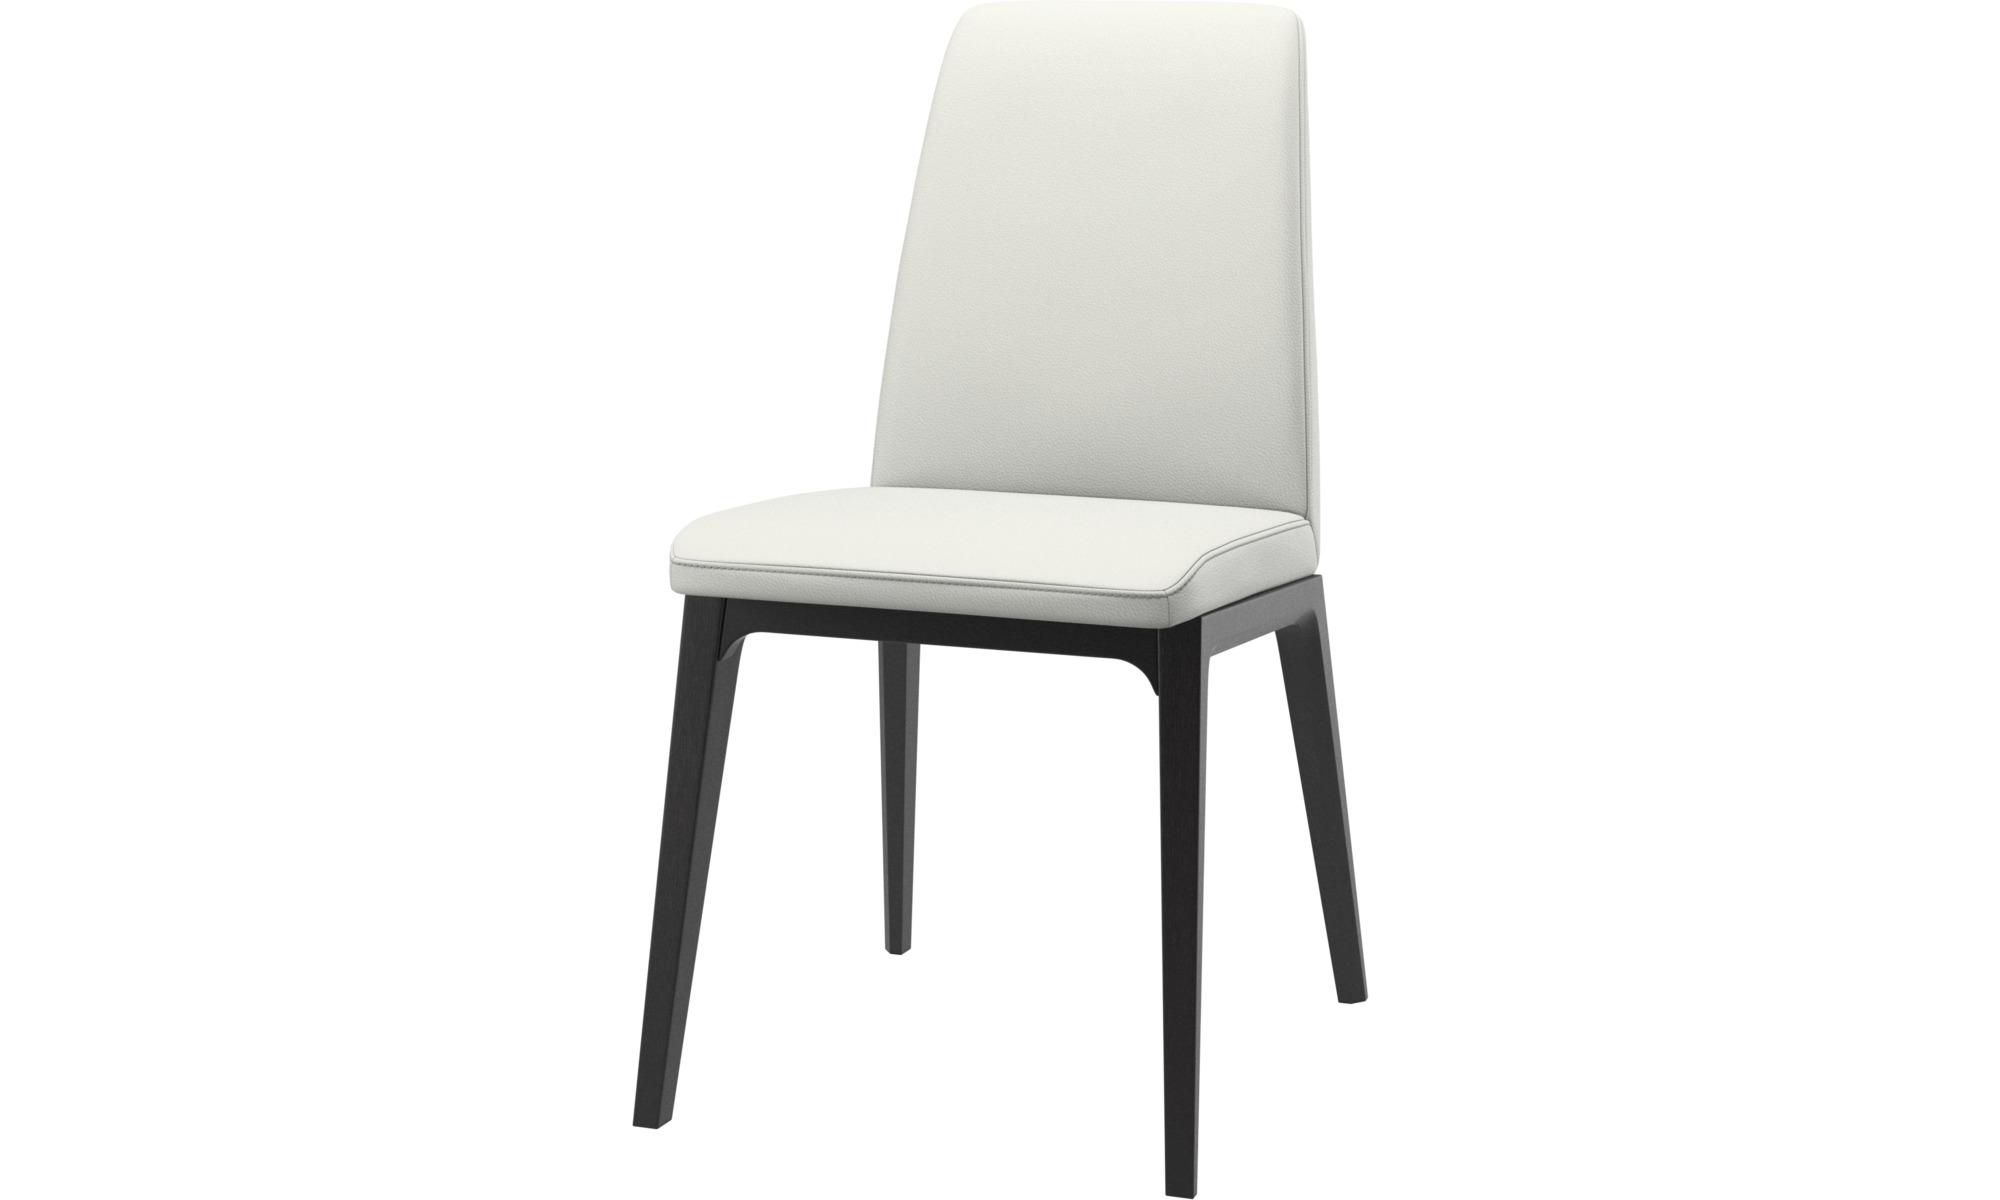 Dining chairs - Lausanne chair - White - Leather